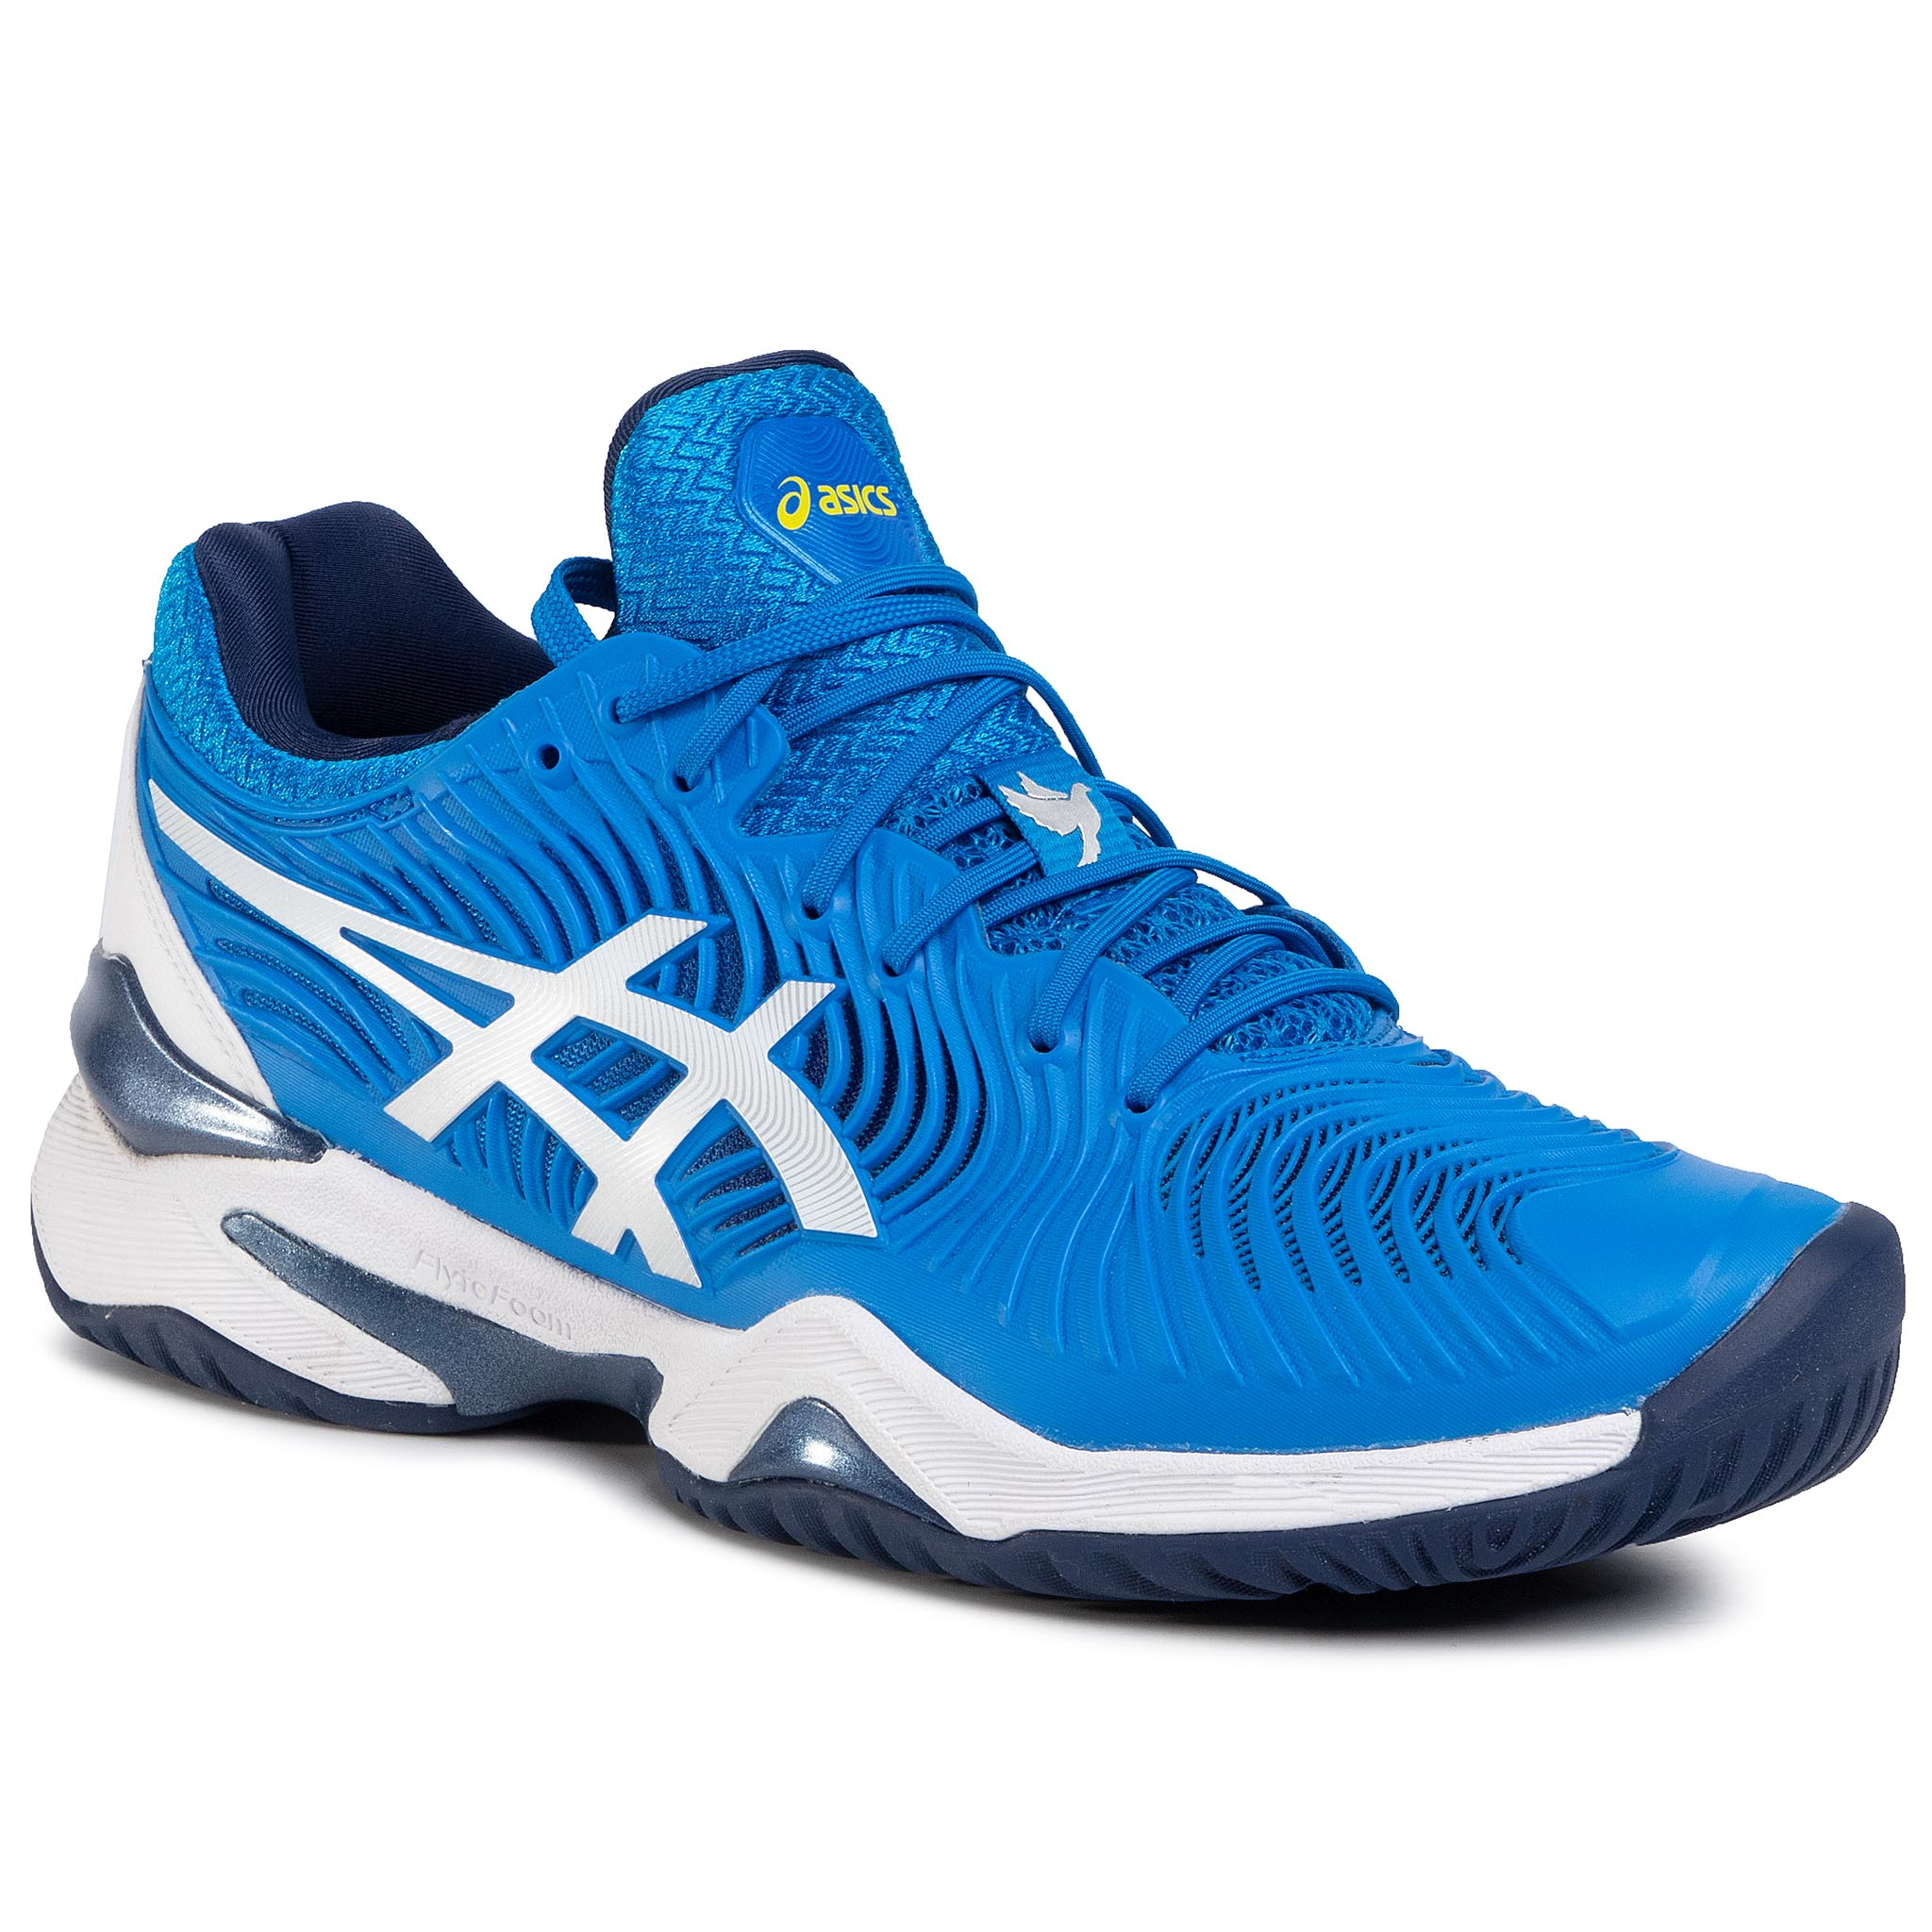 Pantofi Asics - Court Ff Novak 1041a089 Electric Blue/White 400 imagine epantofi.ro 2021